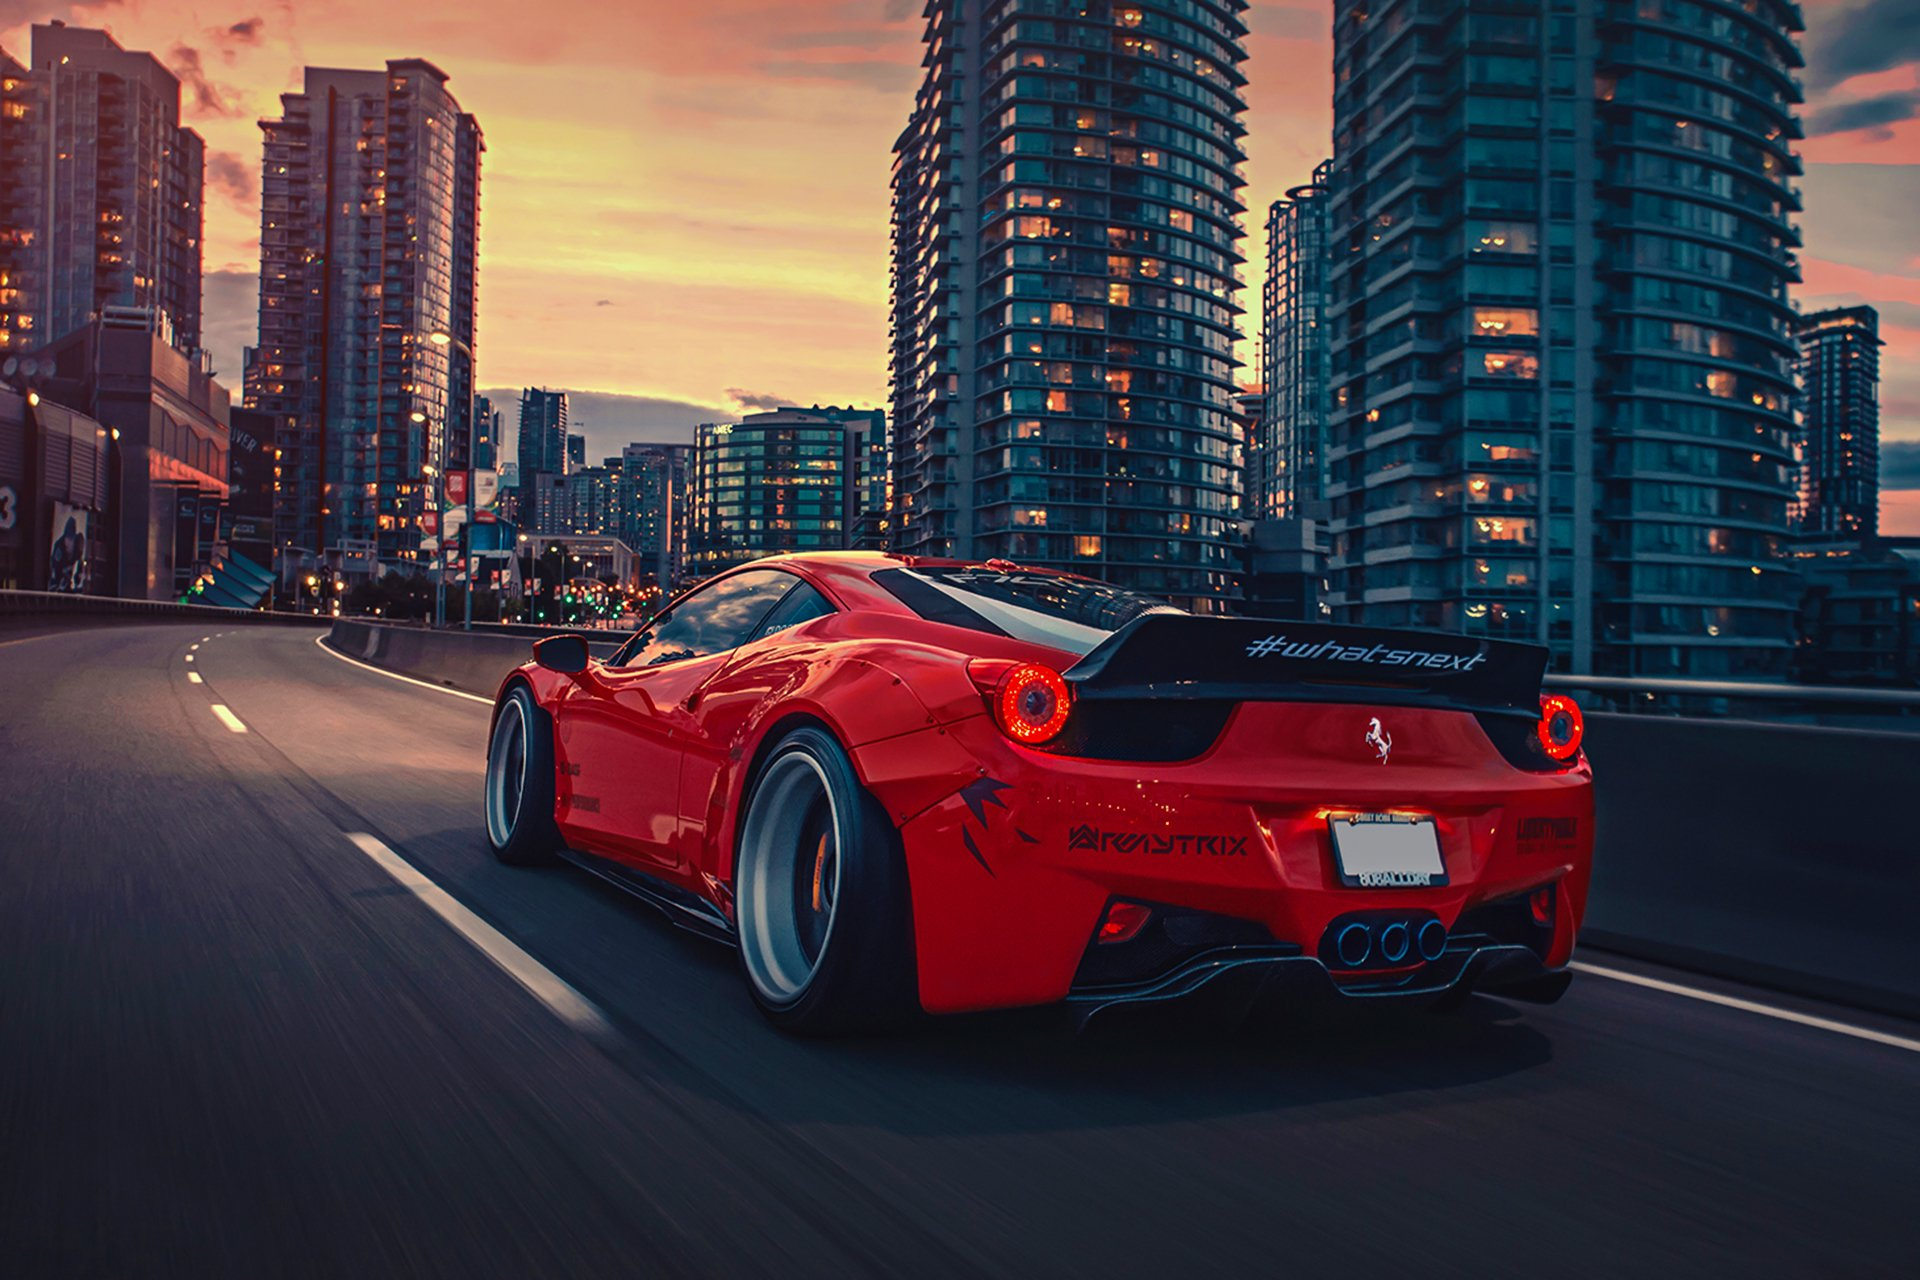 HD Wallpaper | Background Image ID:658896. 1920x1280 Vehicles Ferrari 458